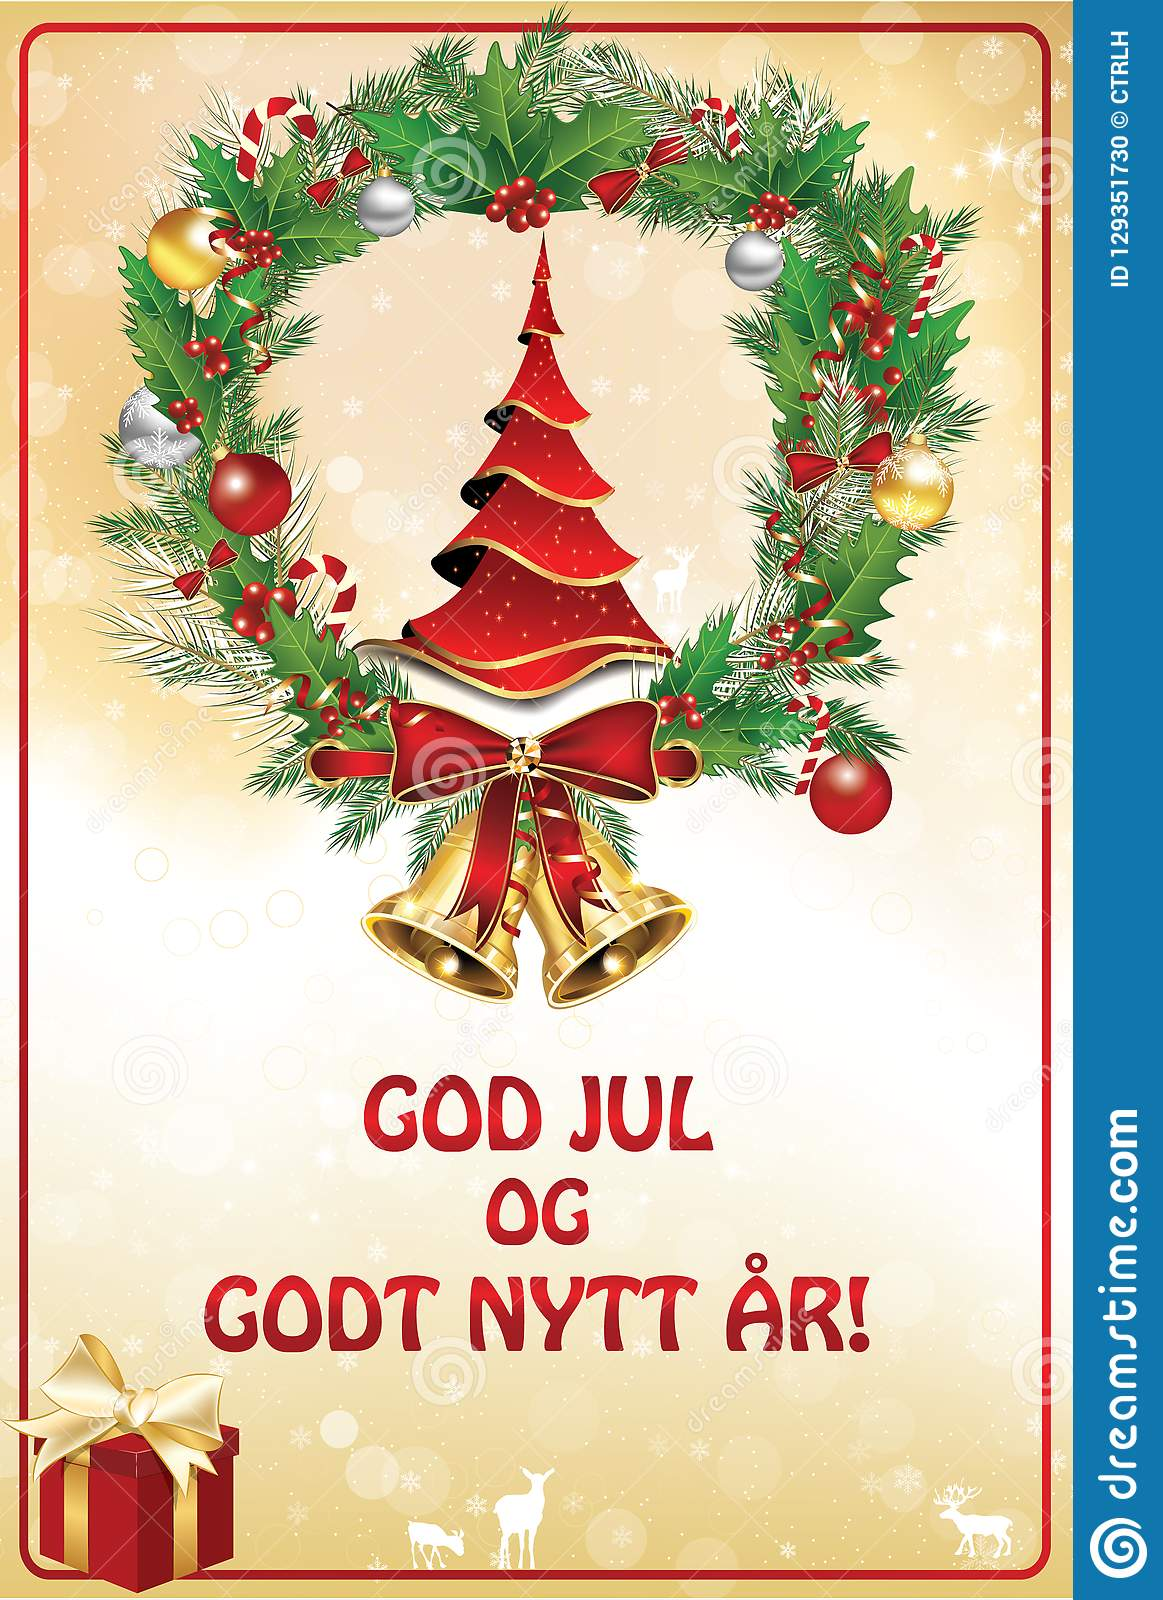 Merry Christmas In Norwegian.Merry Christmas And Happy New Year Greeting Card In